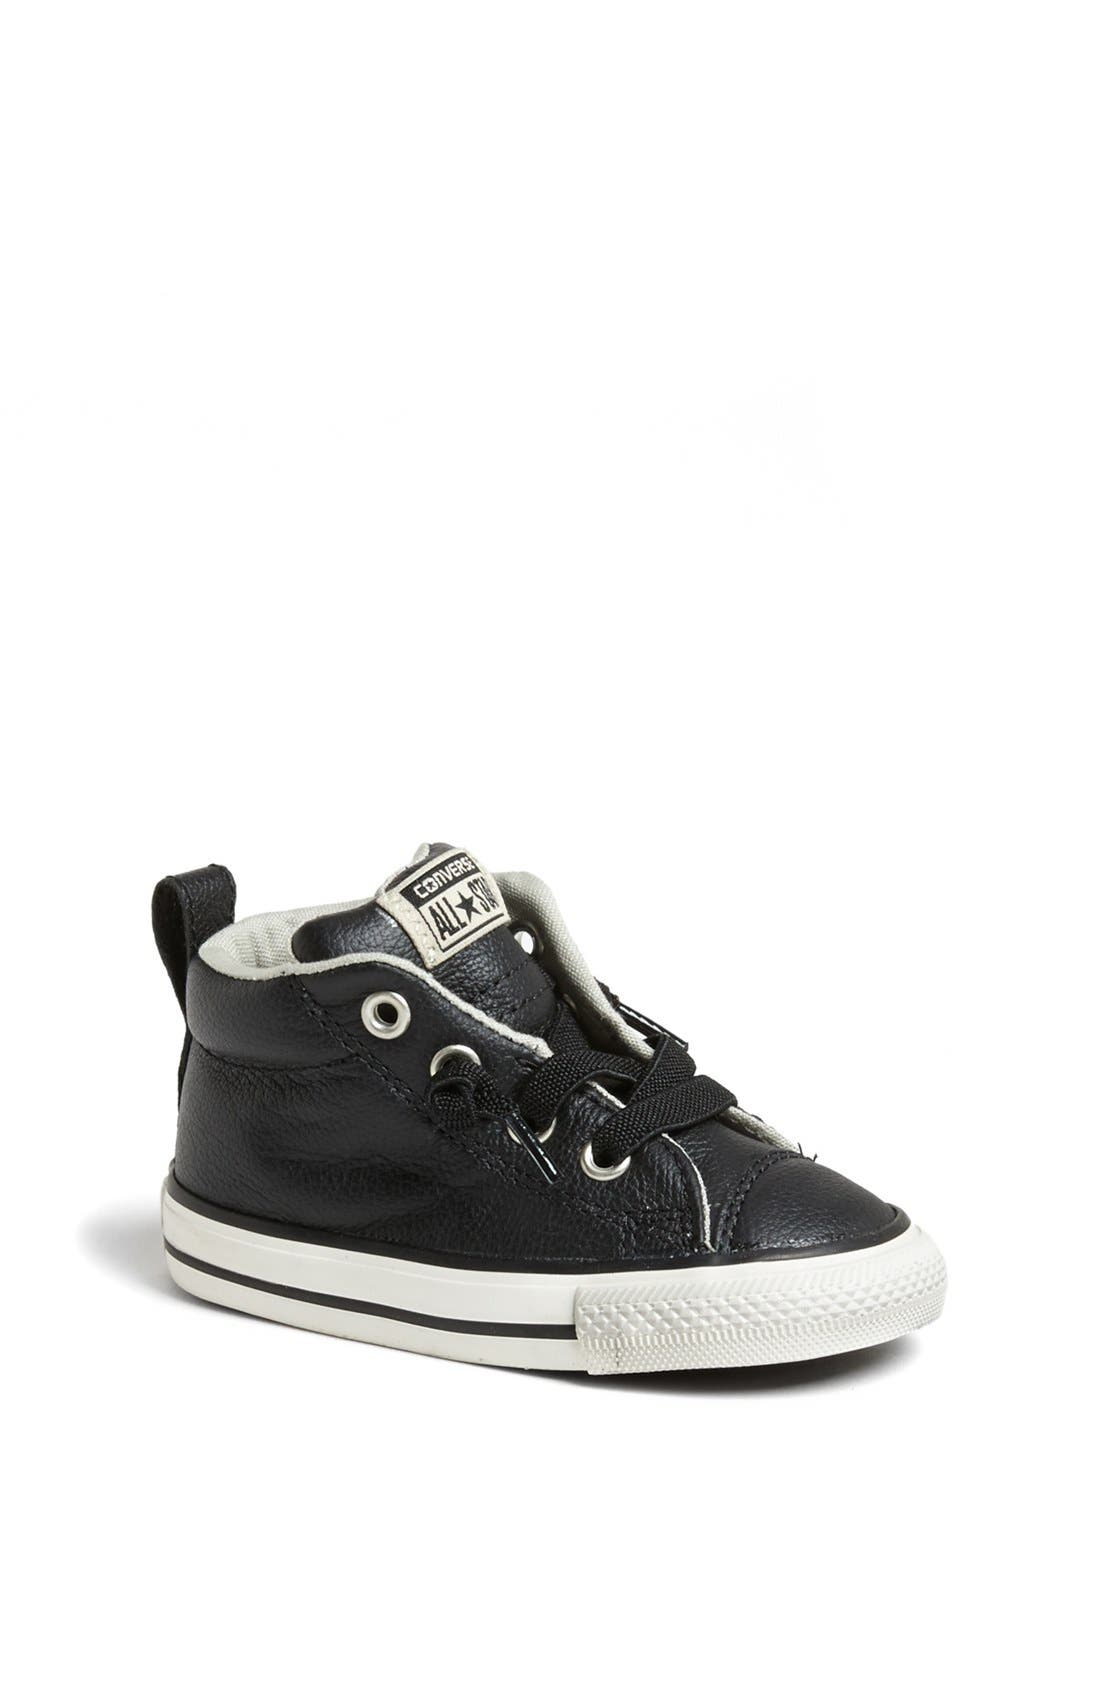 Chuck Taylor<sup>®</sup> All Star<sup>®</sup> 'CT AS Street' Leather Slip-On Sneaker,                             Main thumbnail 1, color,                             Black/ Tidal Foam